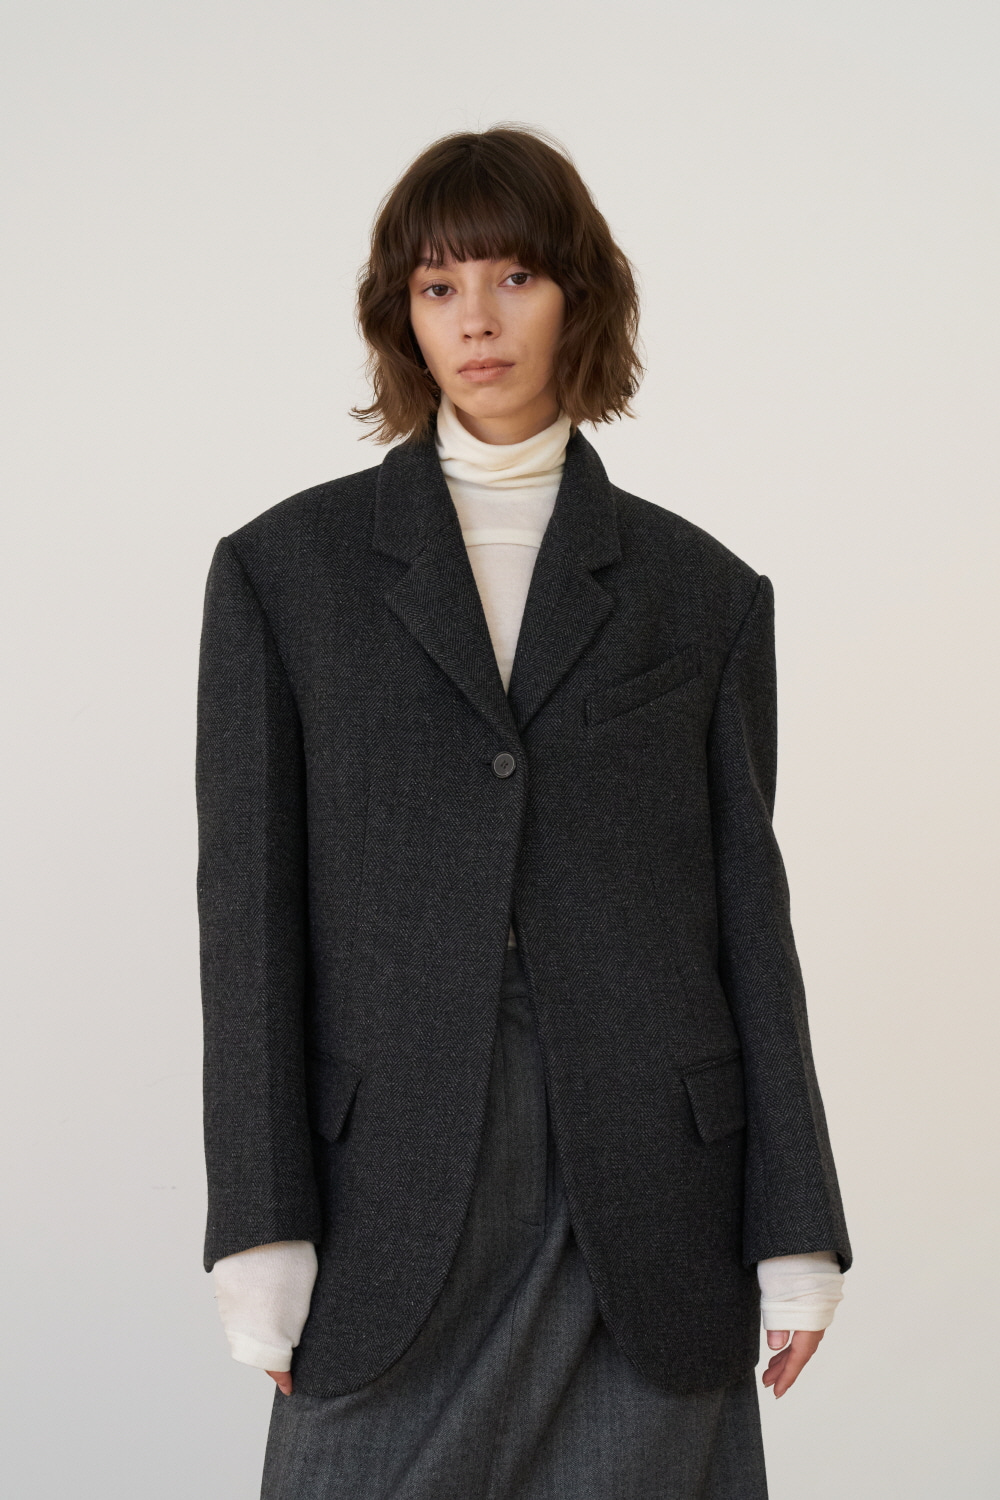 unit | Jacket Harringbone Boy Fit Charcoal Gray